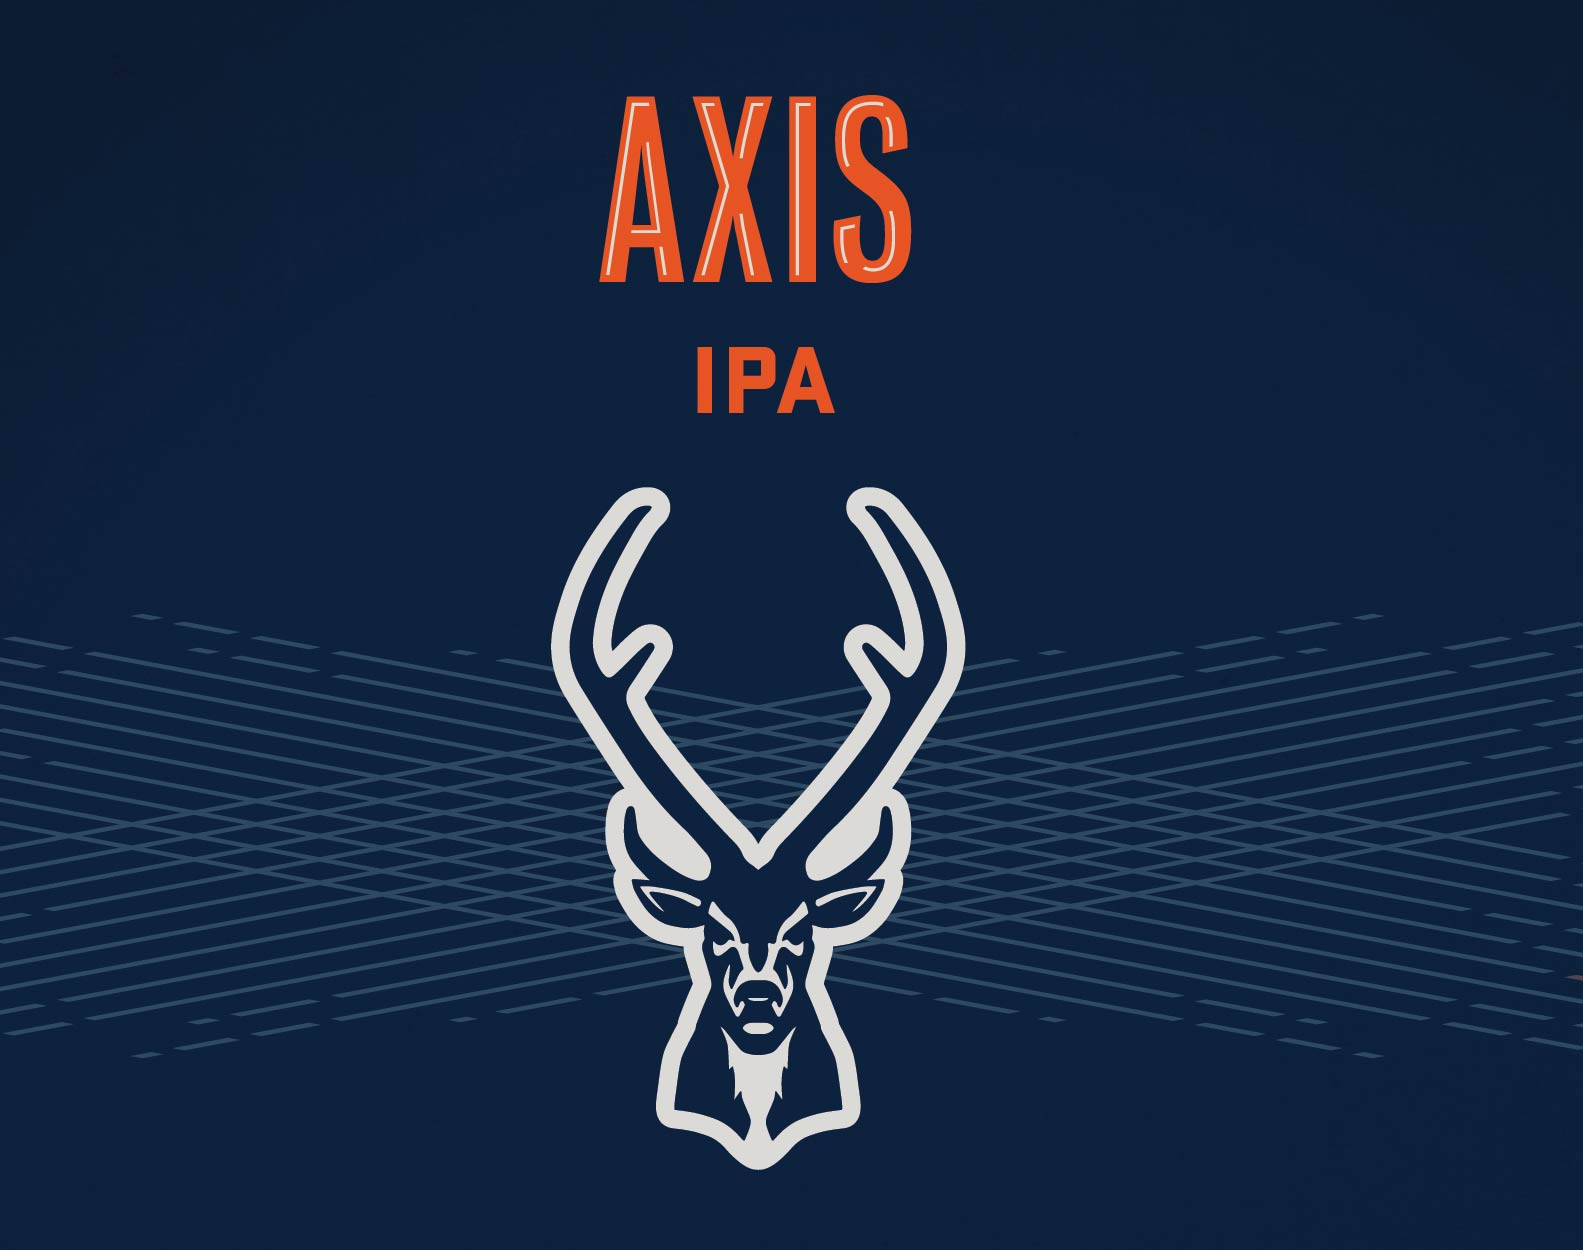 Beer_Web_Labels_Axis_AXIS